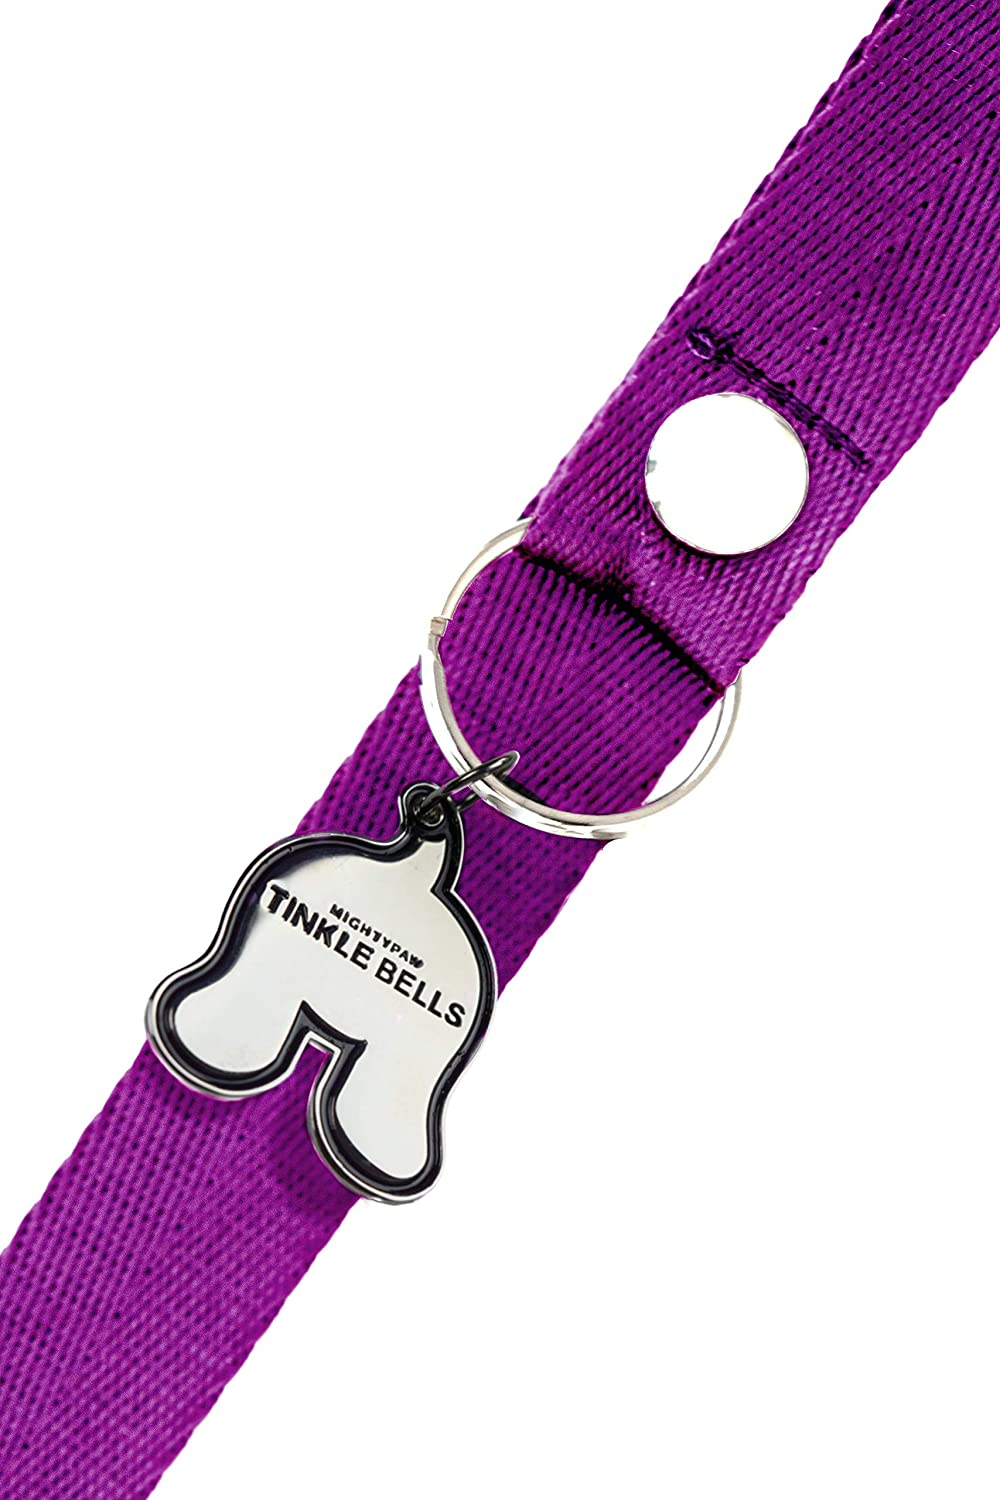 Includes Free Wall Hook Housetraining Doggy Door Bells for Potty Training Premium Quality Dog Doorbells Mighty Paw Tinkle Bells